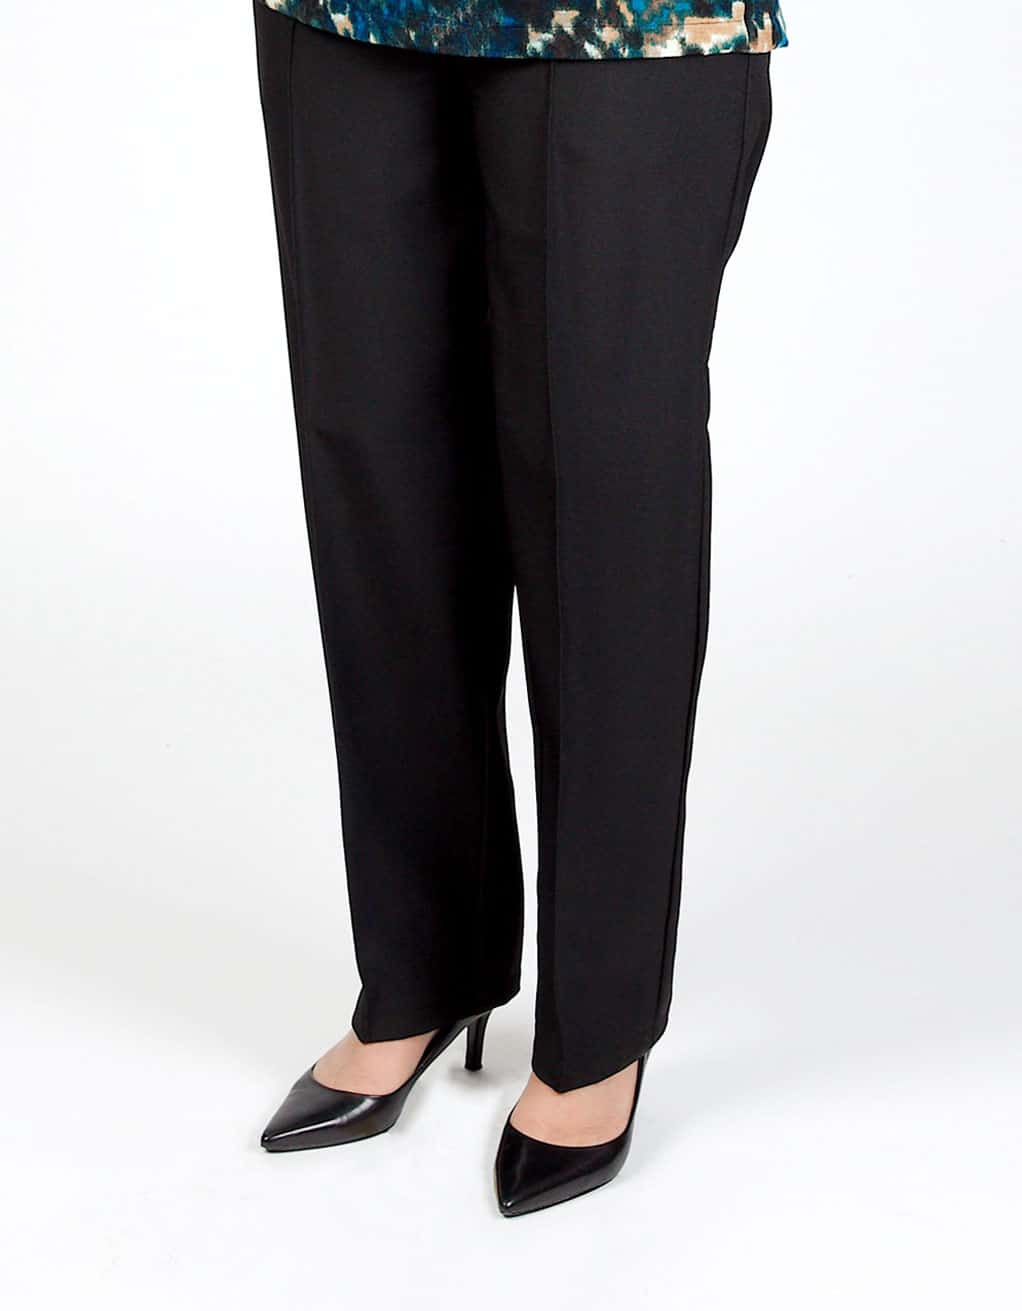 elastic-waist-adaptive-pants-with-pockets-FP62525-04